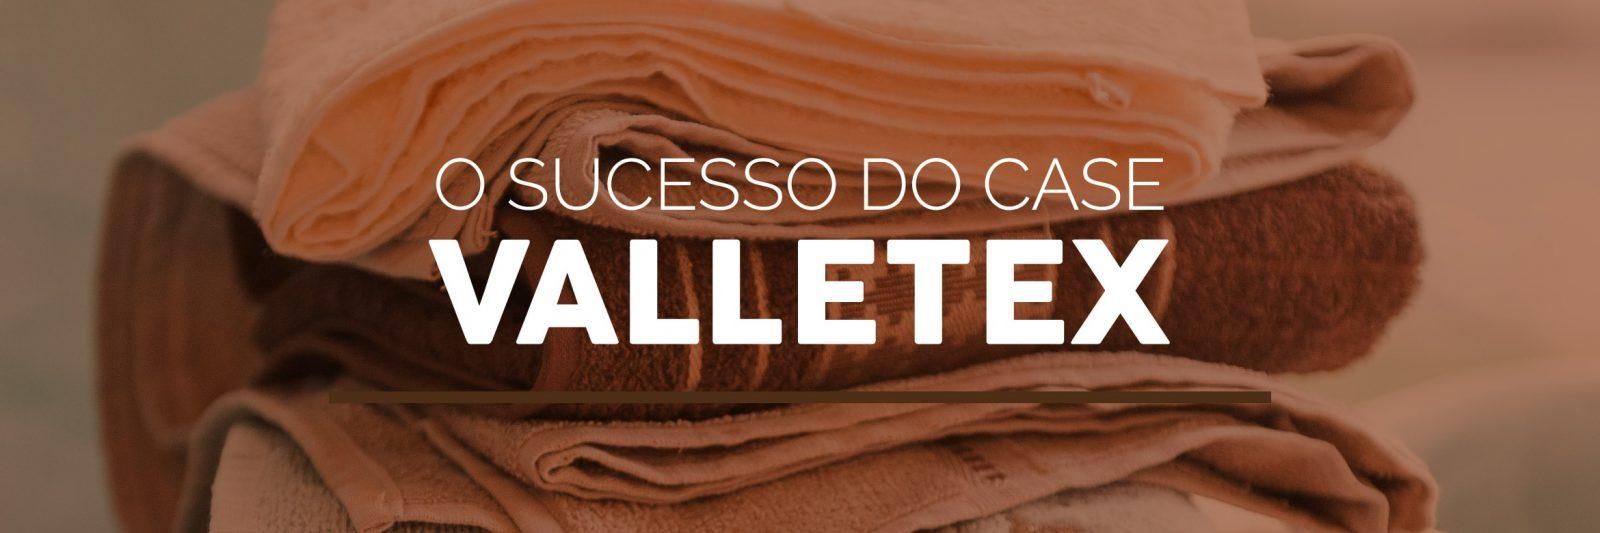 o sucesso do case valletex